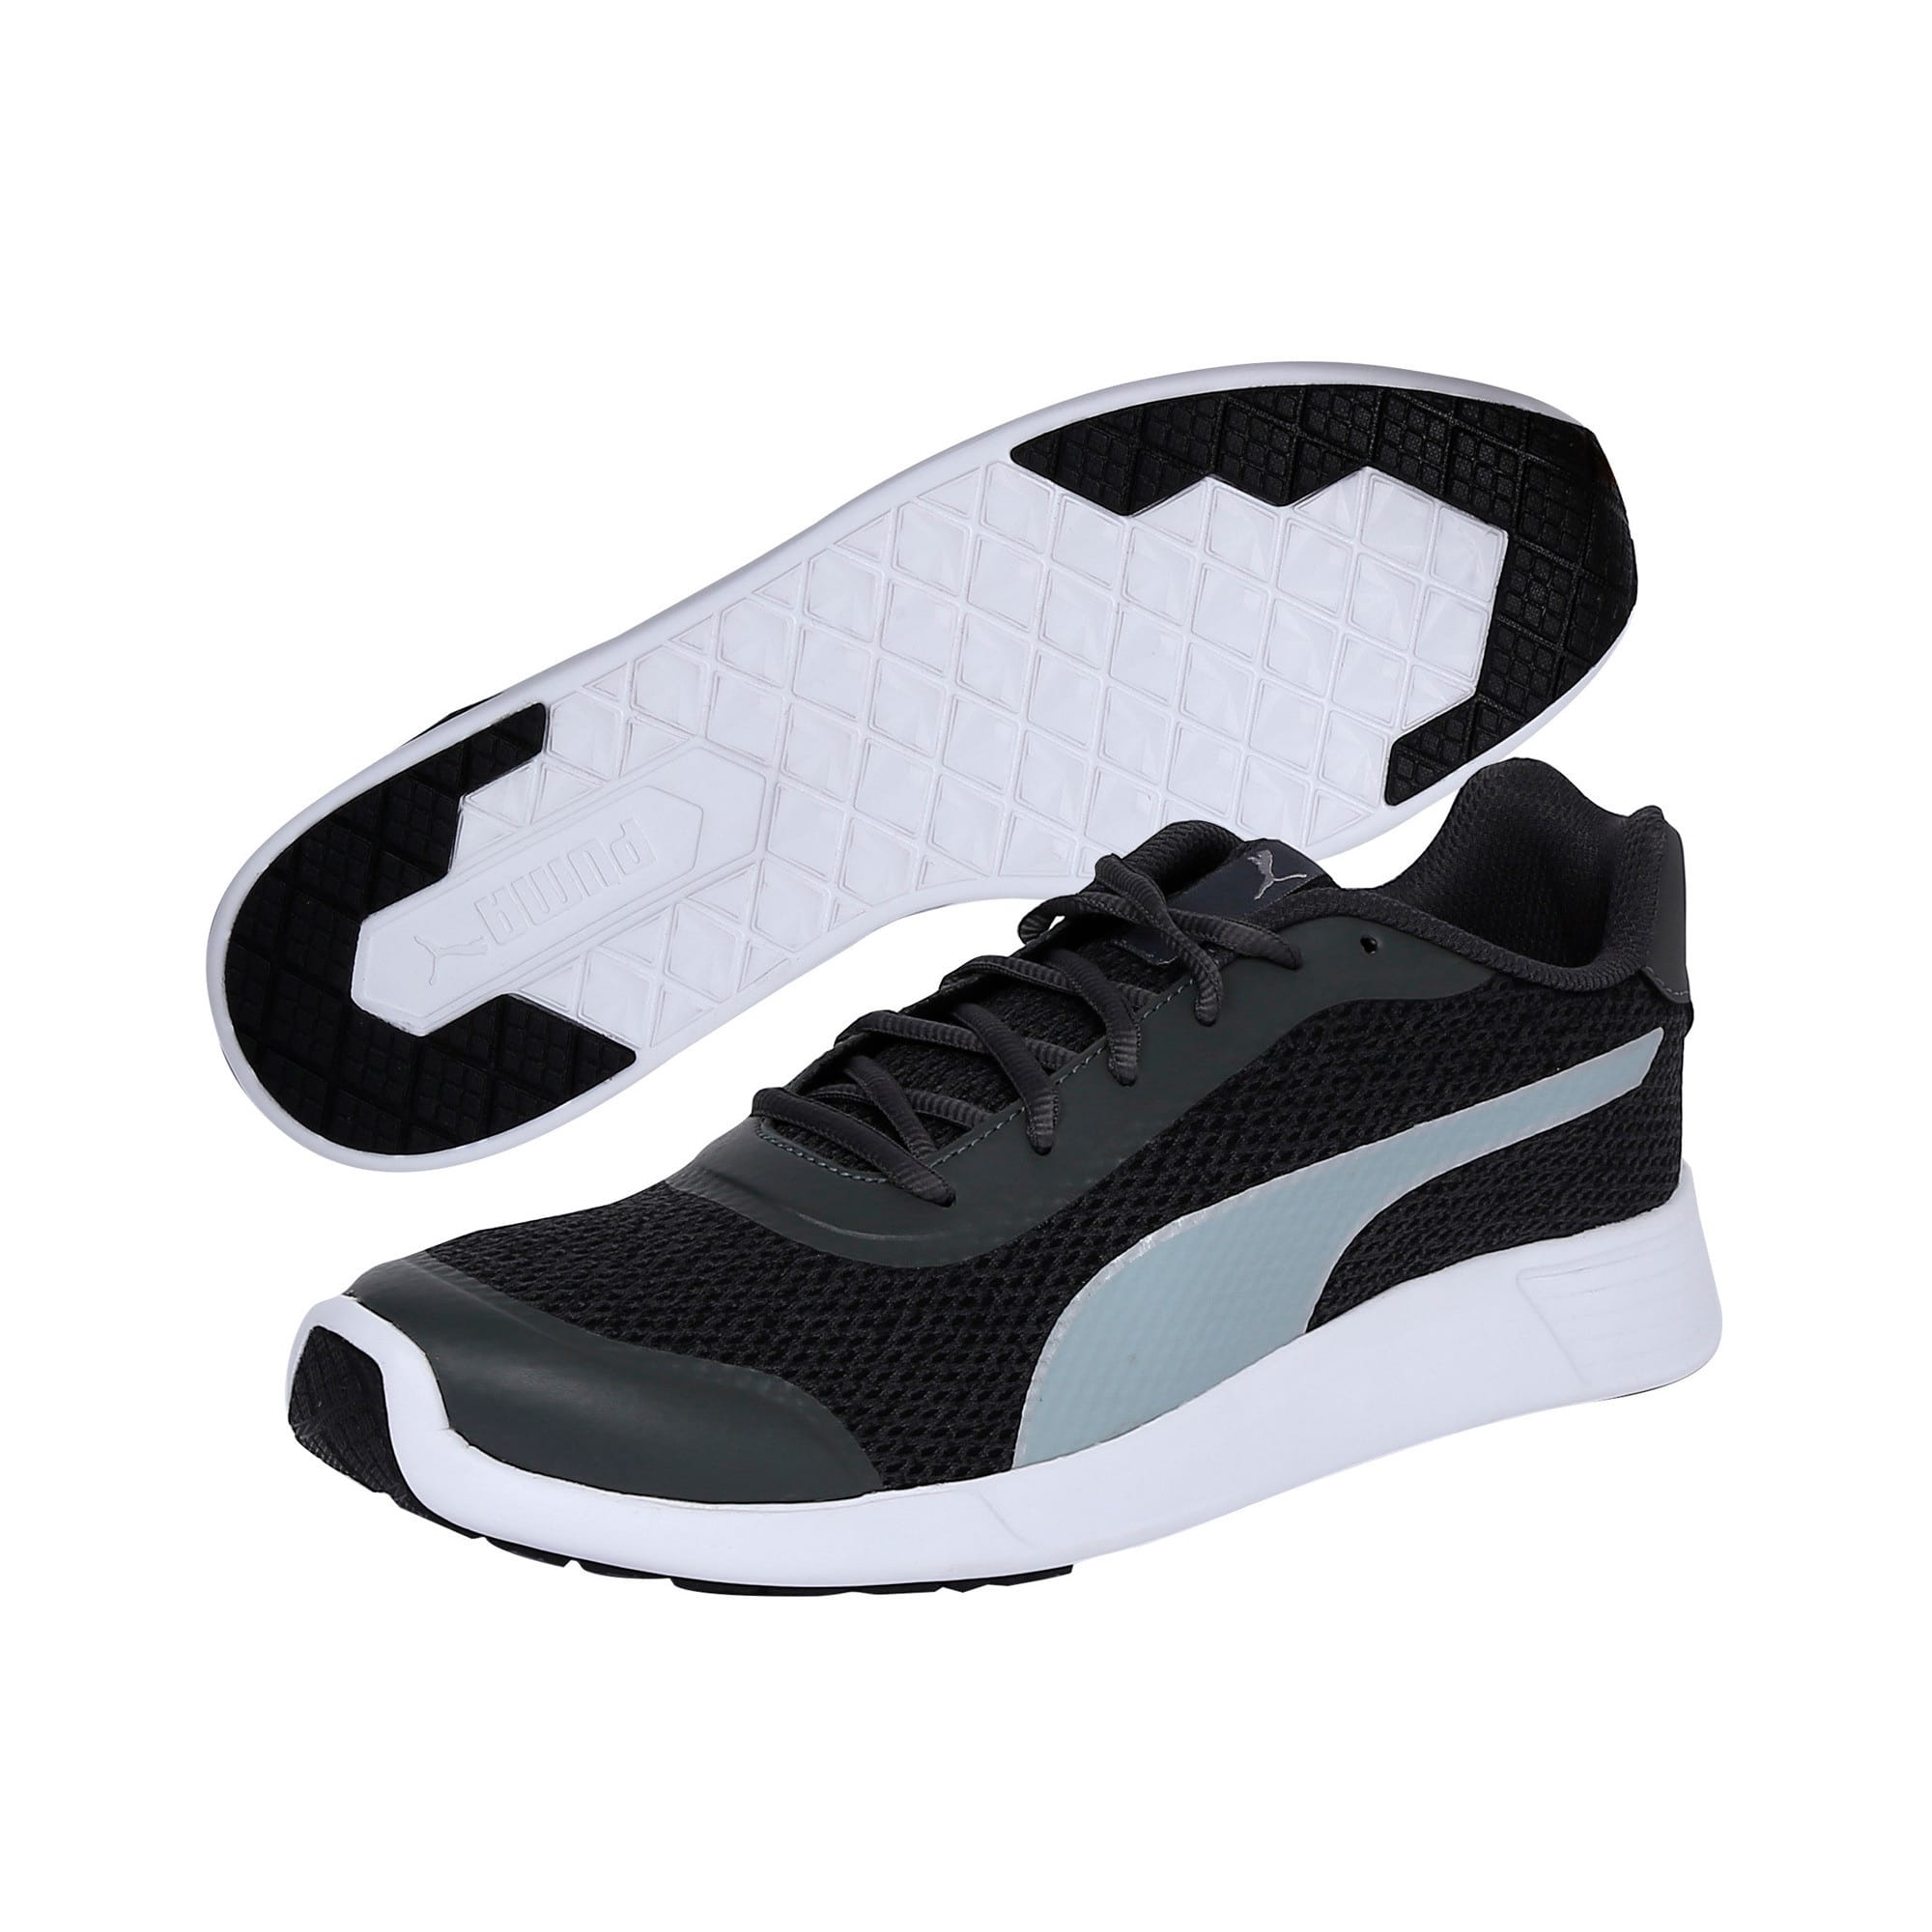 Thumbnail 2 of FST Runner v2 IDP Men's Sportstyle Shoes, Puma White-Quarry-Puma Black, medium-IND